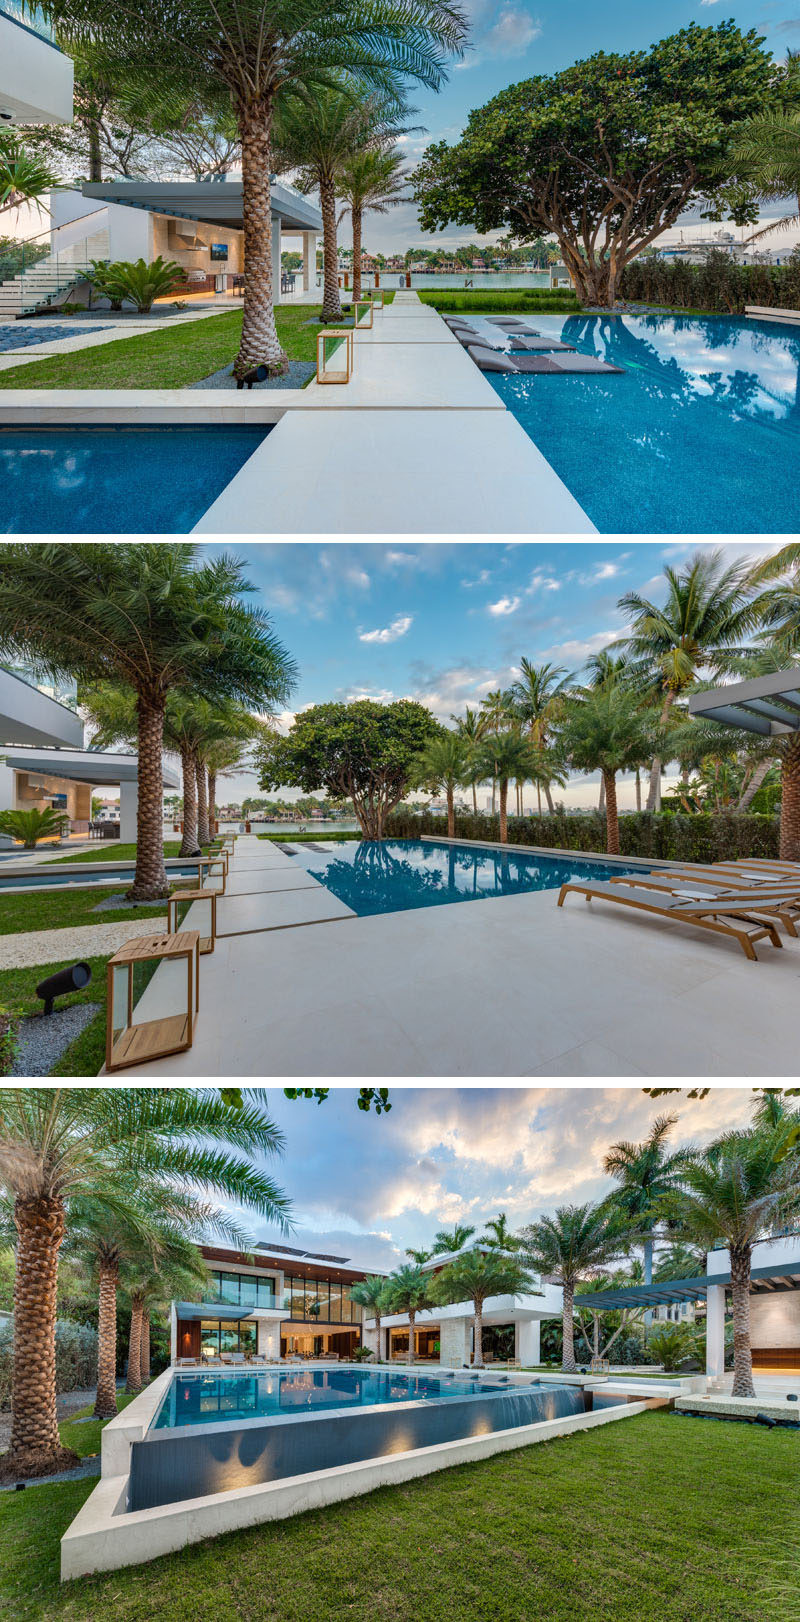 This modern house, which was designed around a giant Banyan tree, has an over-sized infinity-edge pool that flows into shallow water that transforms into several reflecting ponds that wrap around an island with lounge seating. #Landscaping #SwimmingPool